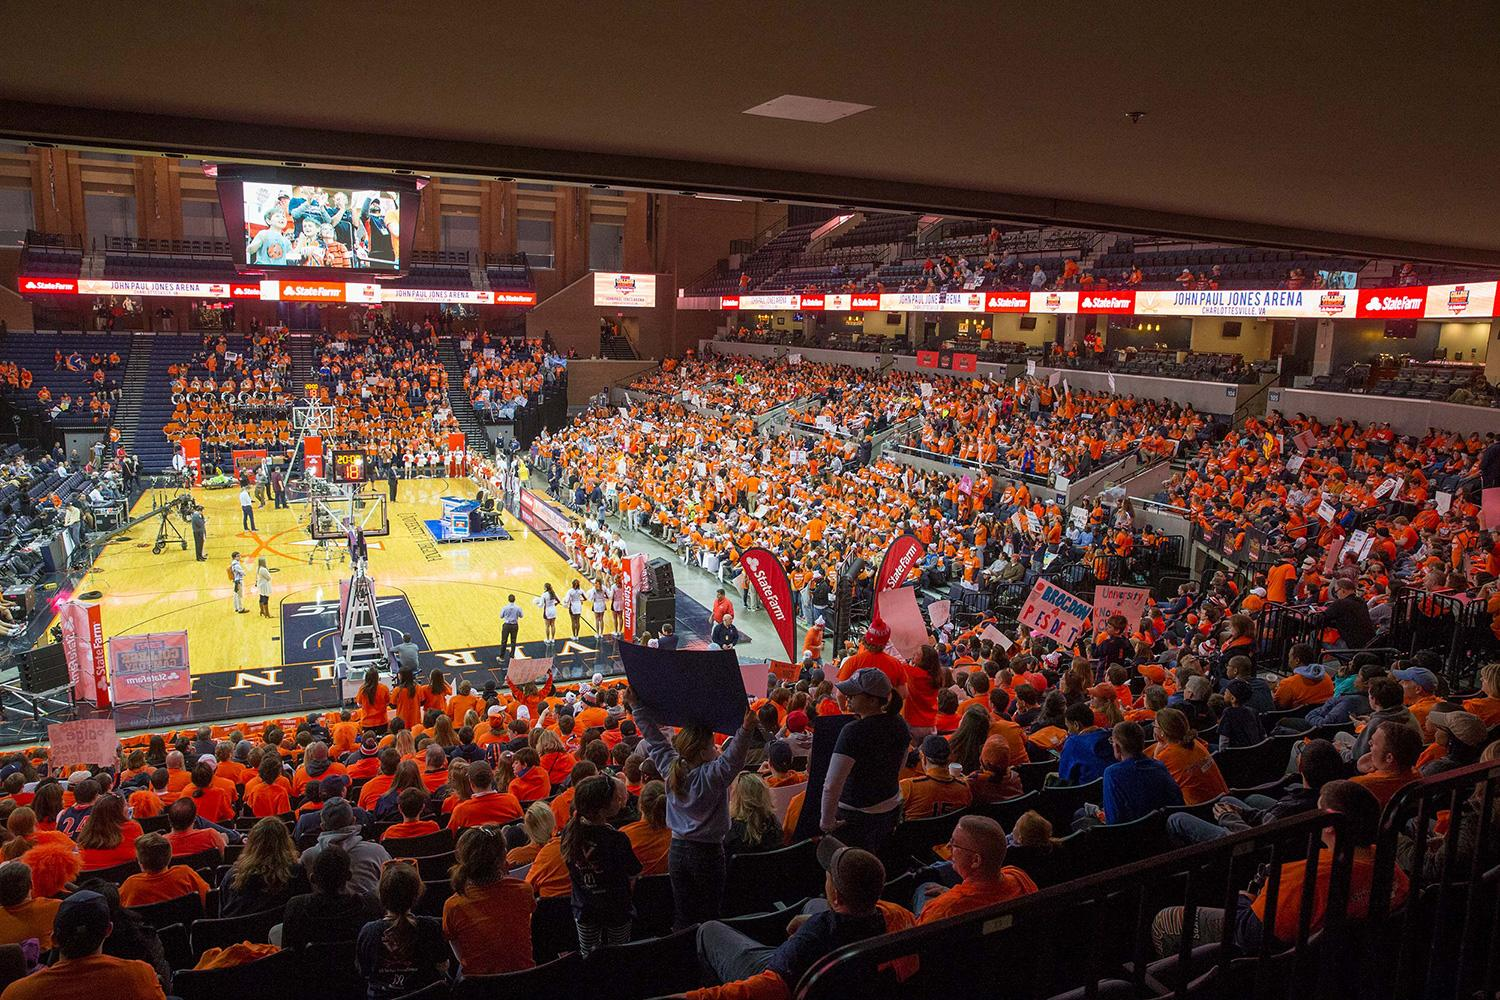 Expect another sea of orange and blue Monday night when the UVA community gathers at John Paul Jones Arena to watch the Cavaliers play for their first national championship.